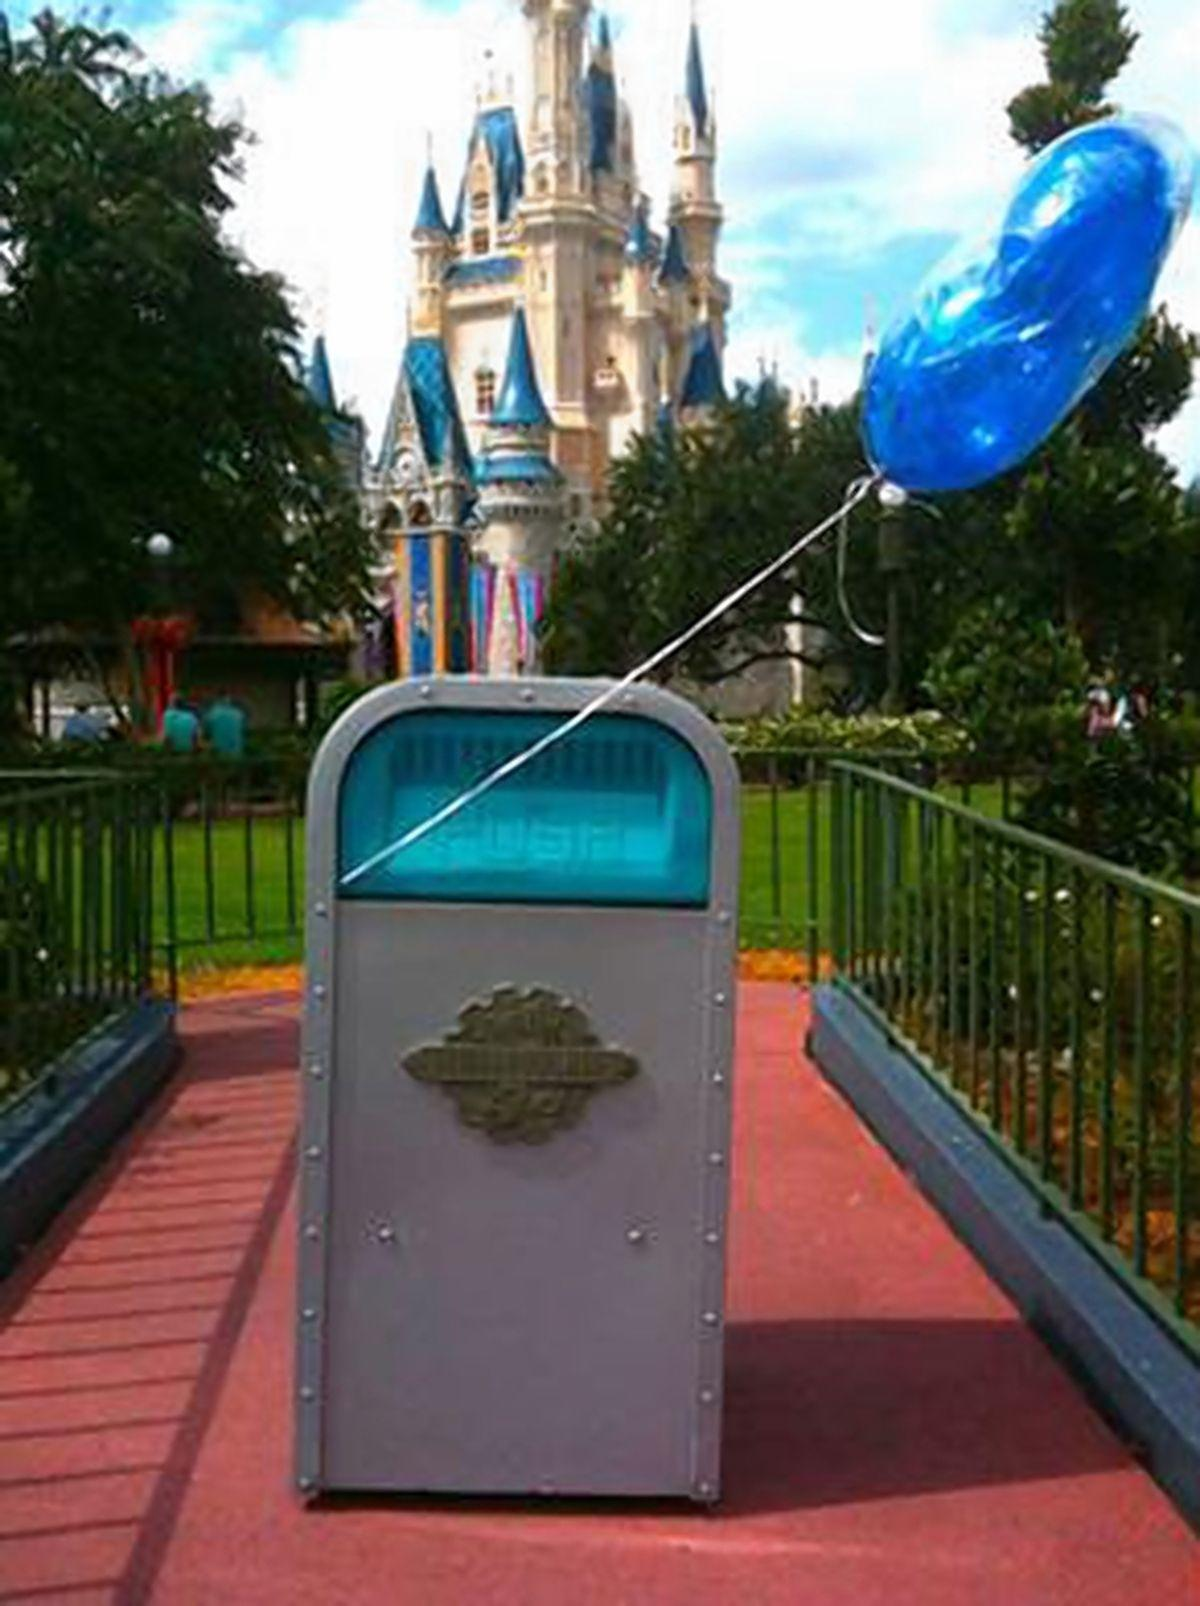 Trash cans of Disney